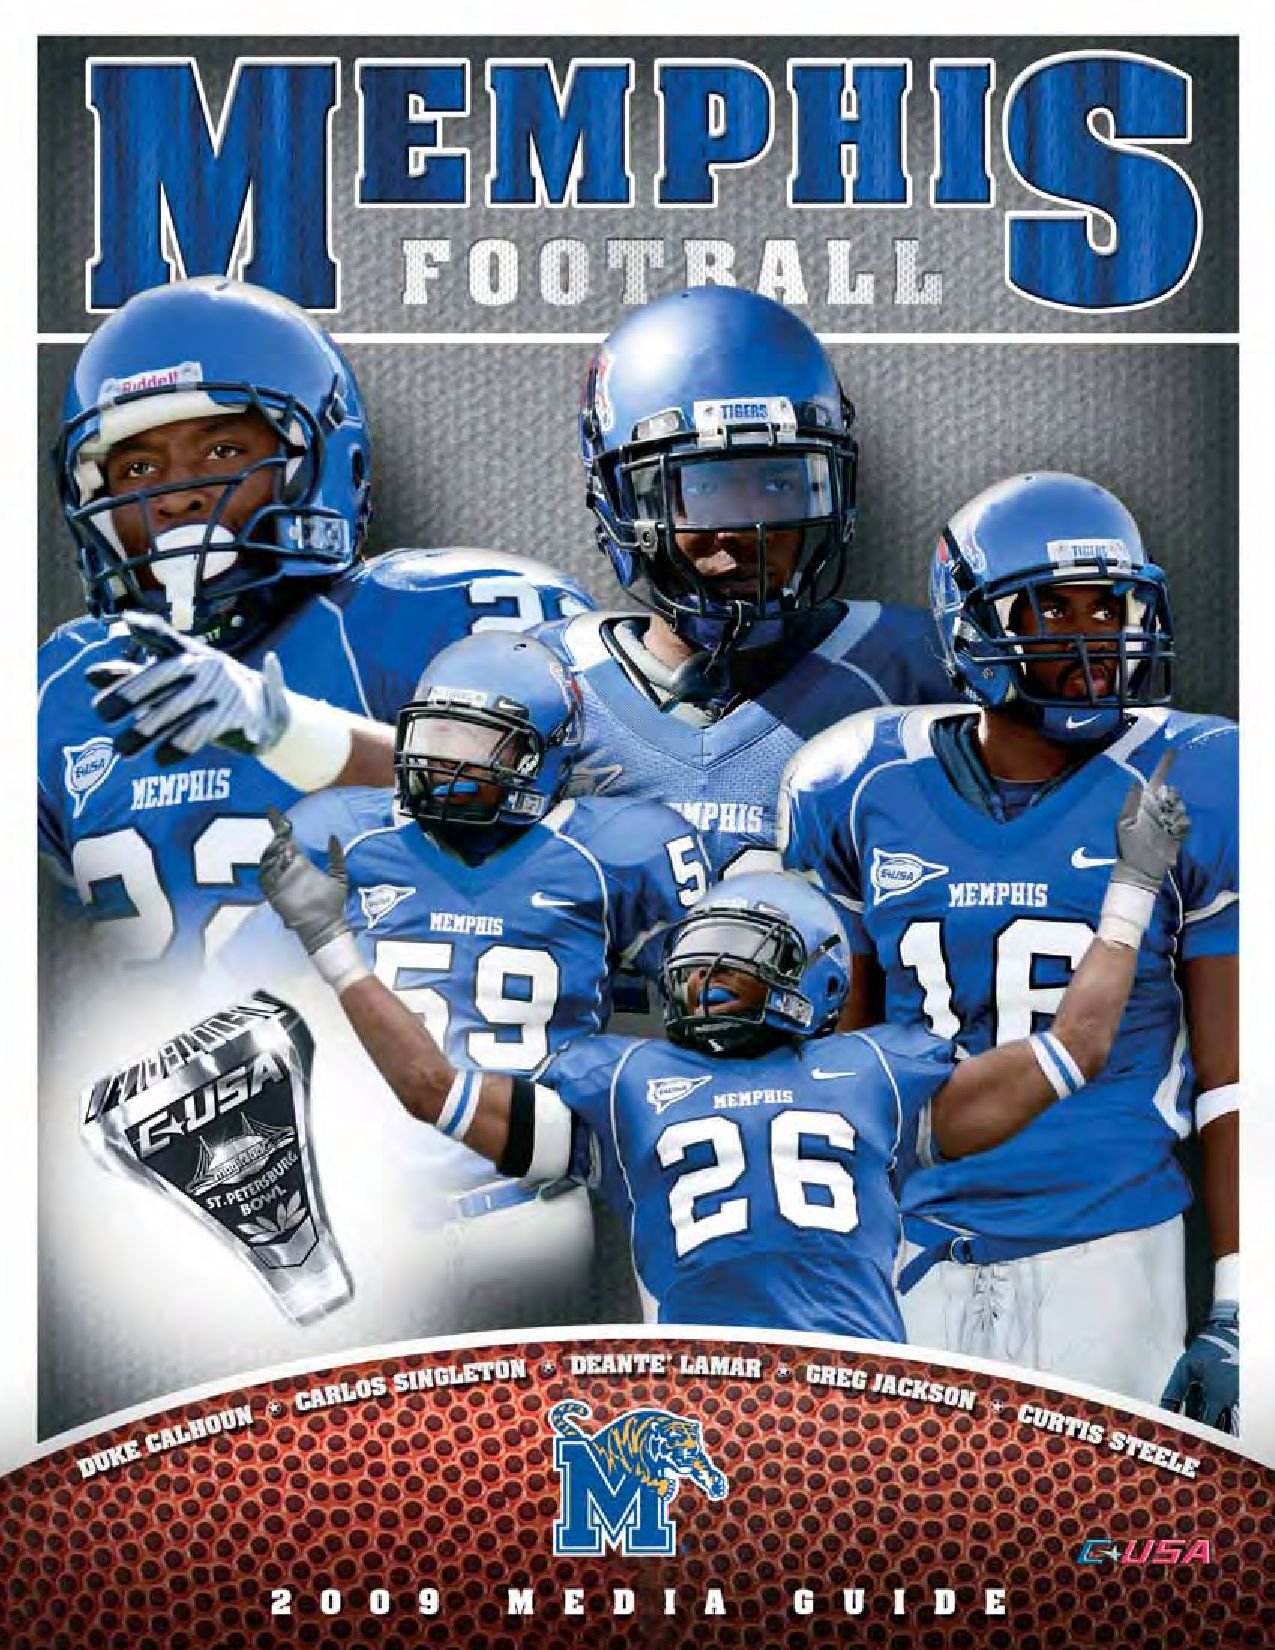 2009 Memphis Football Media Guide by University of Memphis